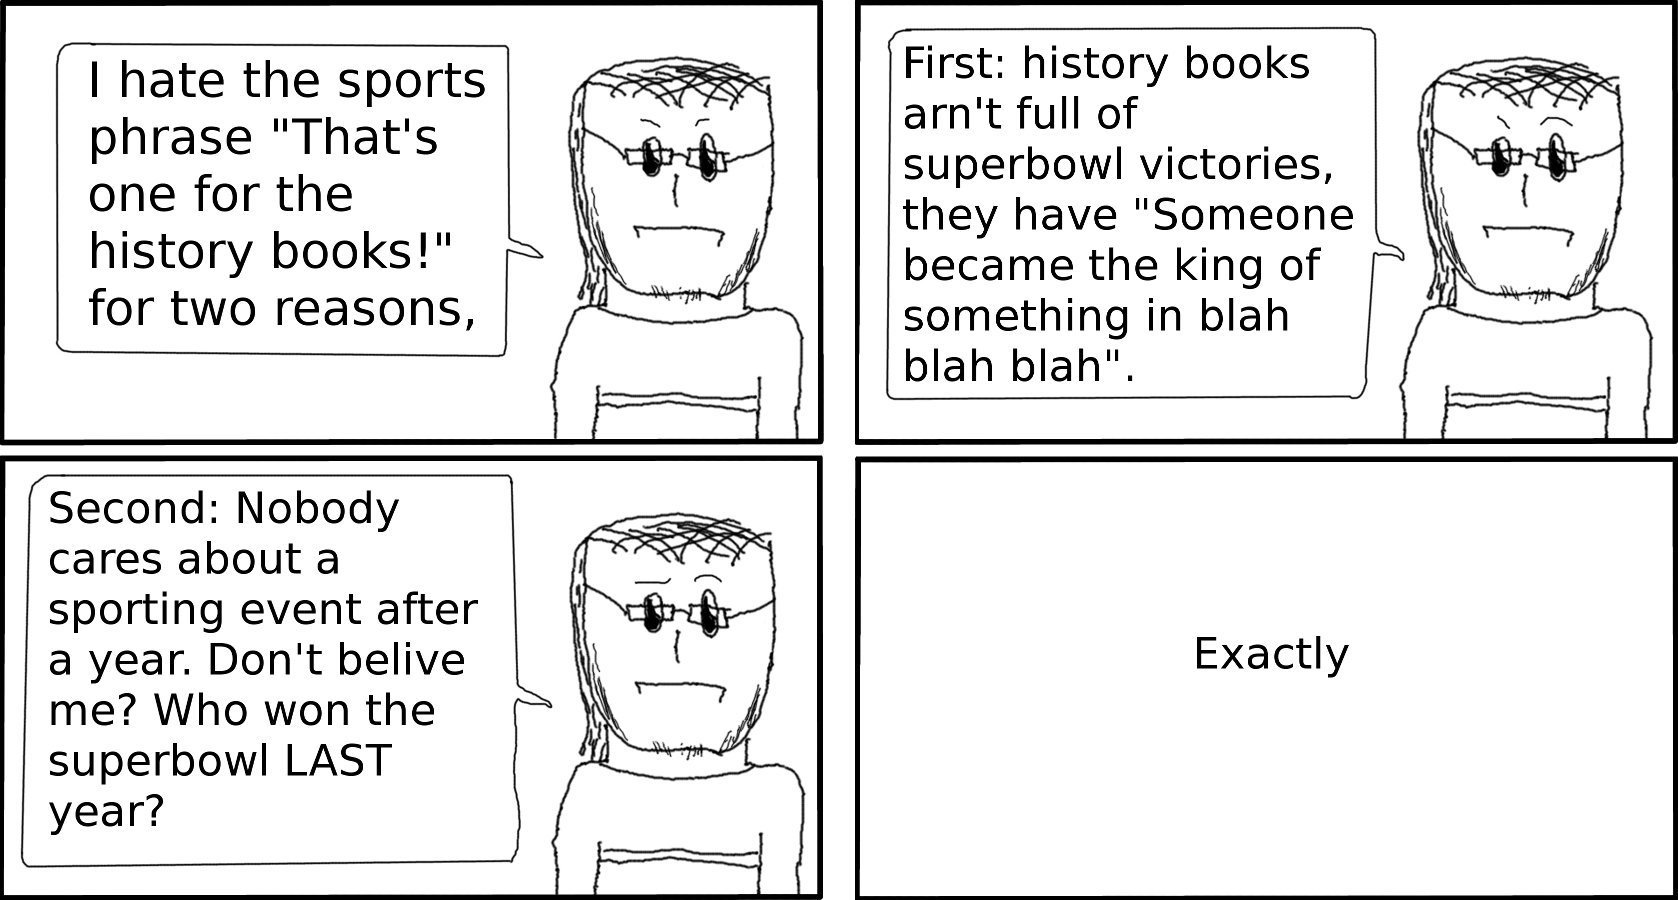 This is a comic for the history books!